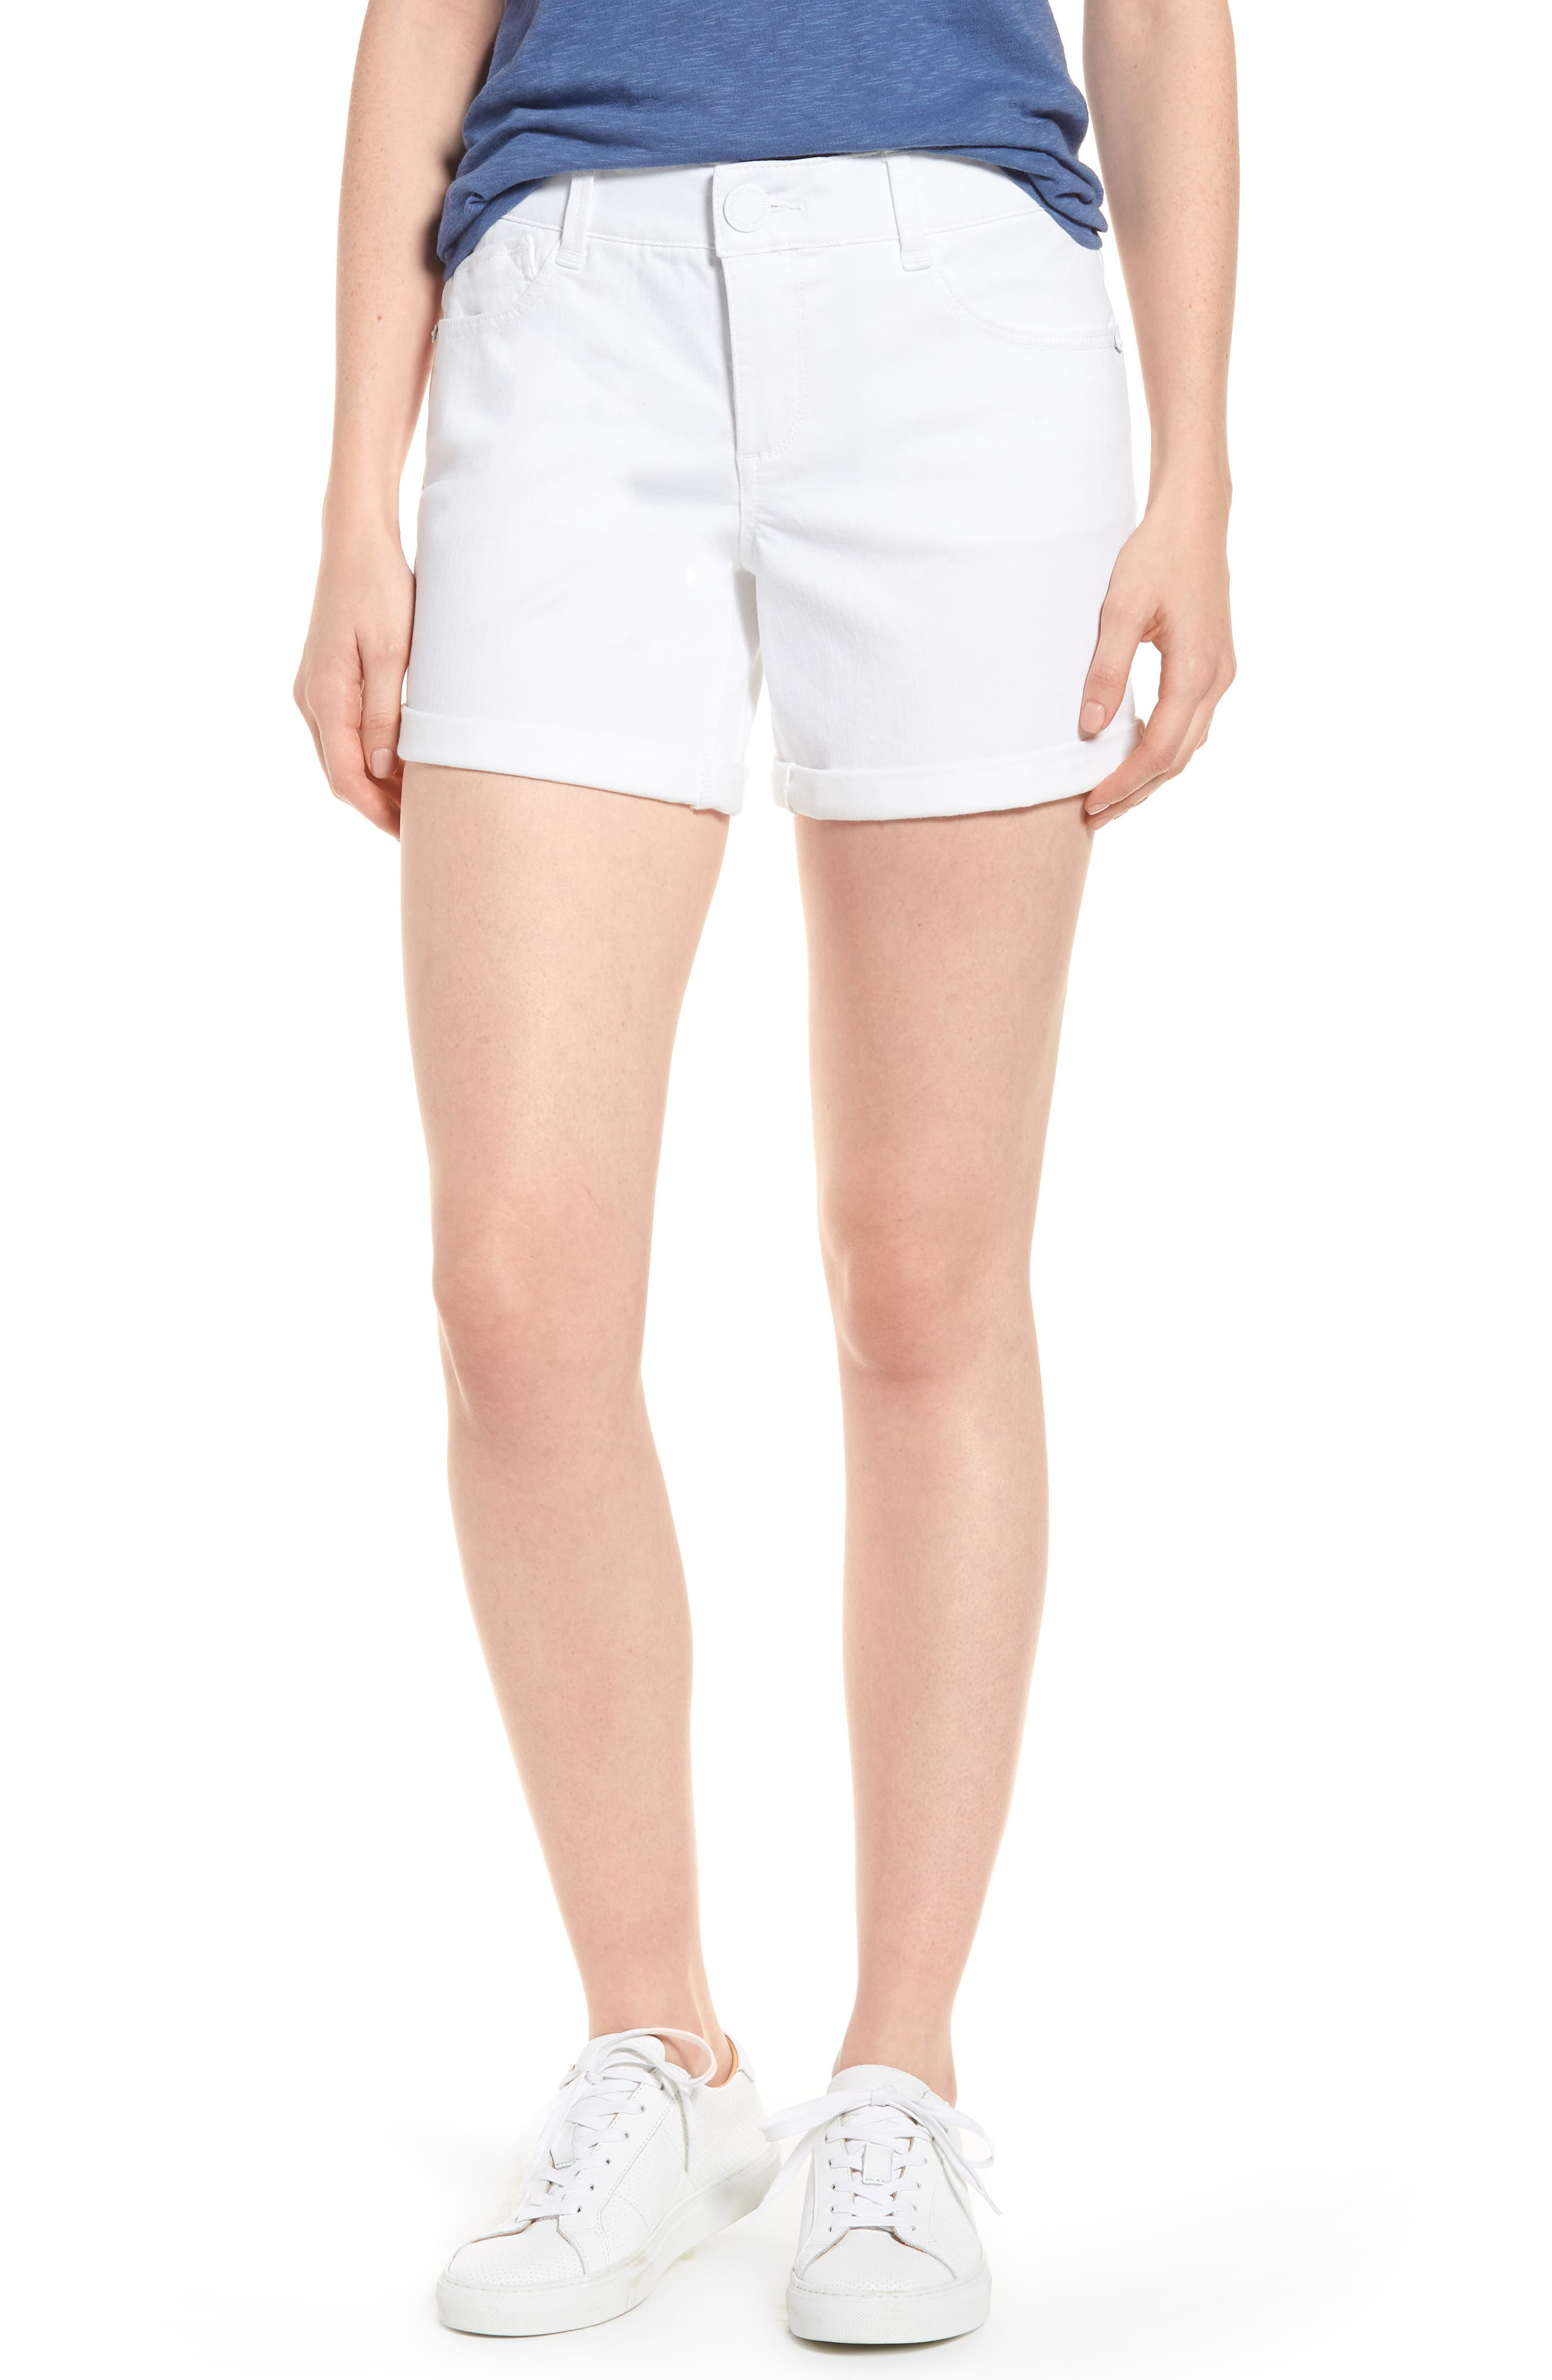 Ab-solution Cuffed White Shorts,                             Main thumbnail 1, color,                             106